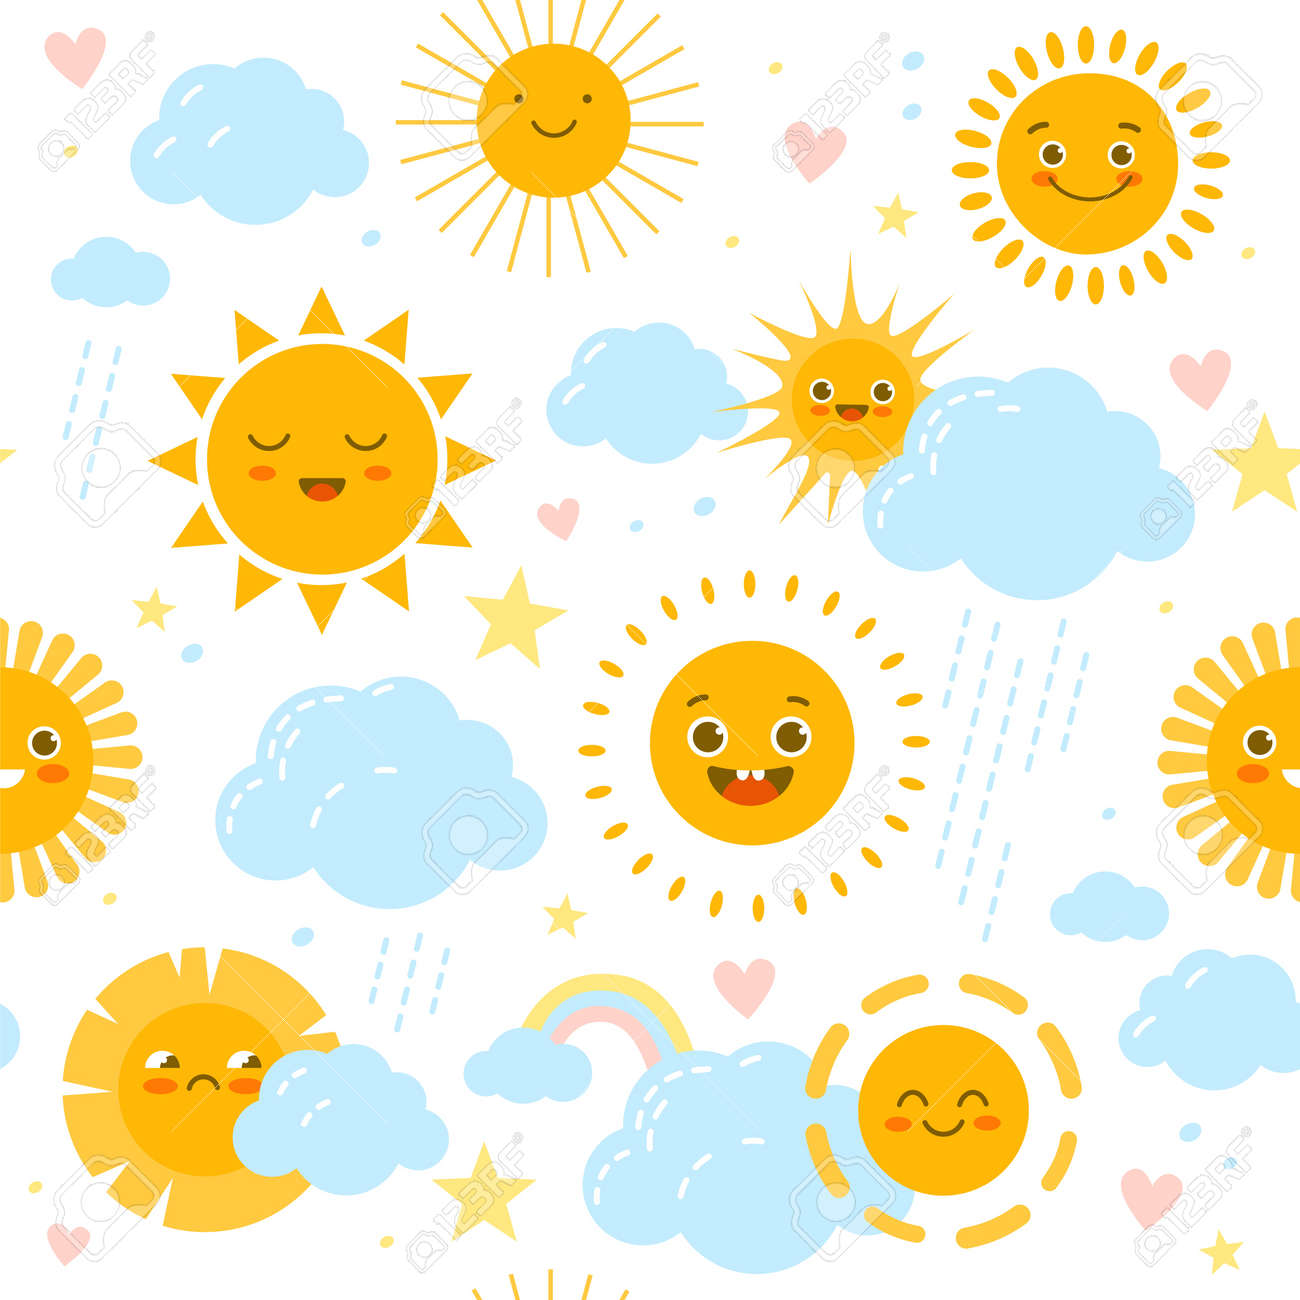 Sun seamless pattern. Baby print with weathers happy or sad smiles. Rainbow and clouds with raindrops. Funny nursery decor. Kids soft pastel colors stars and hearts. Vector background - 171599889